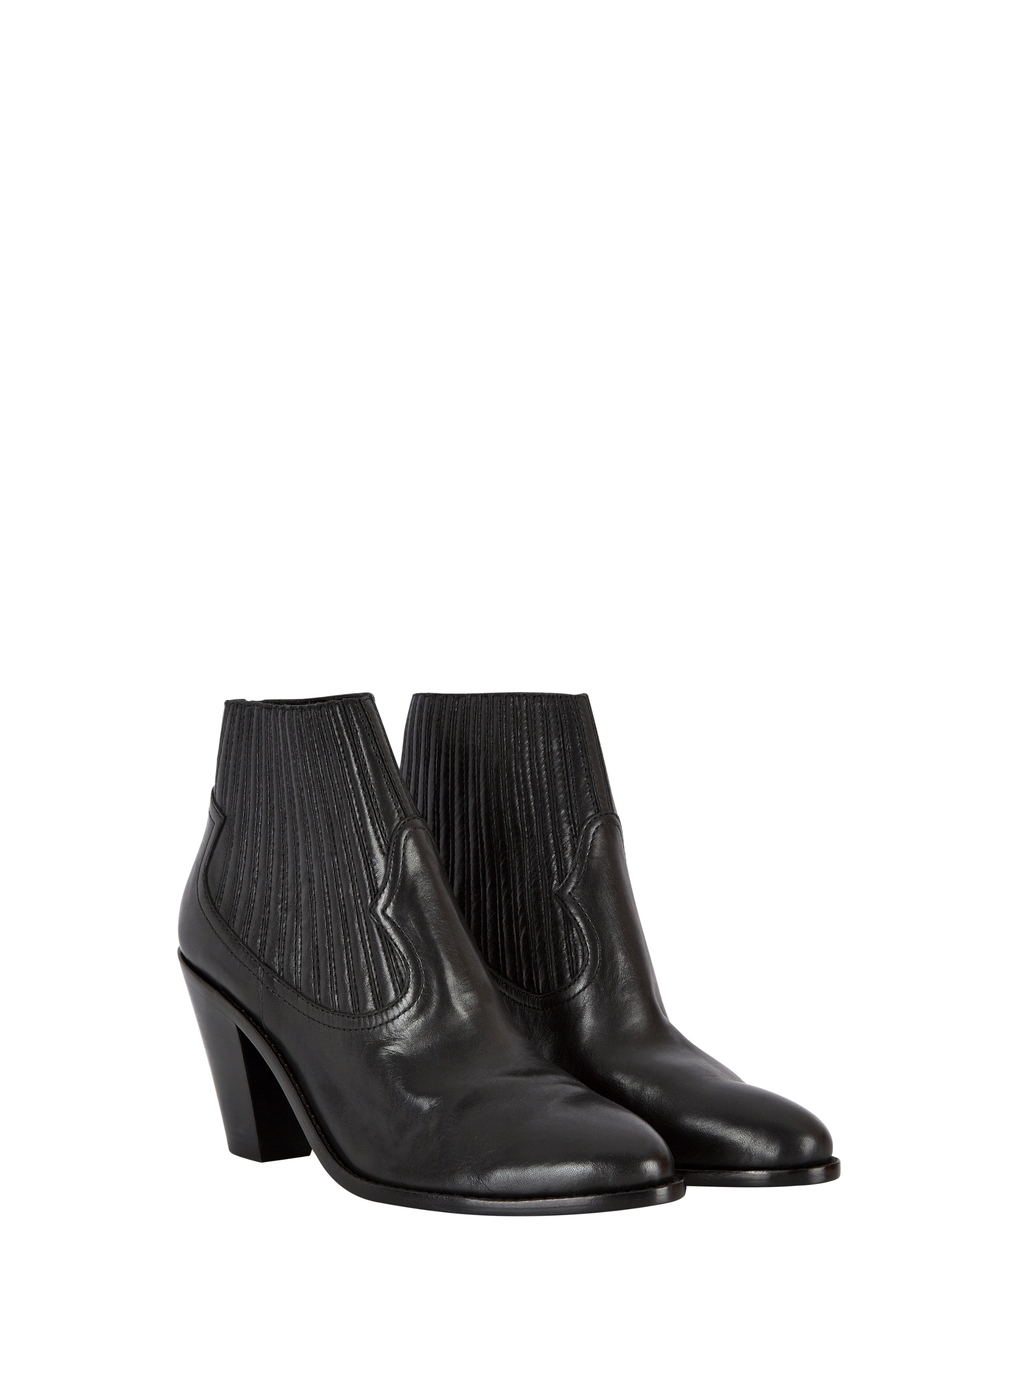 Womenswear Ash Leather Ilona Ankle Boot - predominant colour: black; occasions: casual, creative work; material: leather; heel height: mid; heel: block; toe: round toe; boot length: ankle boot; style: cowboy; finish: plain; pattern: plain; season: a/w 2015